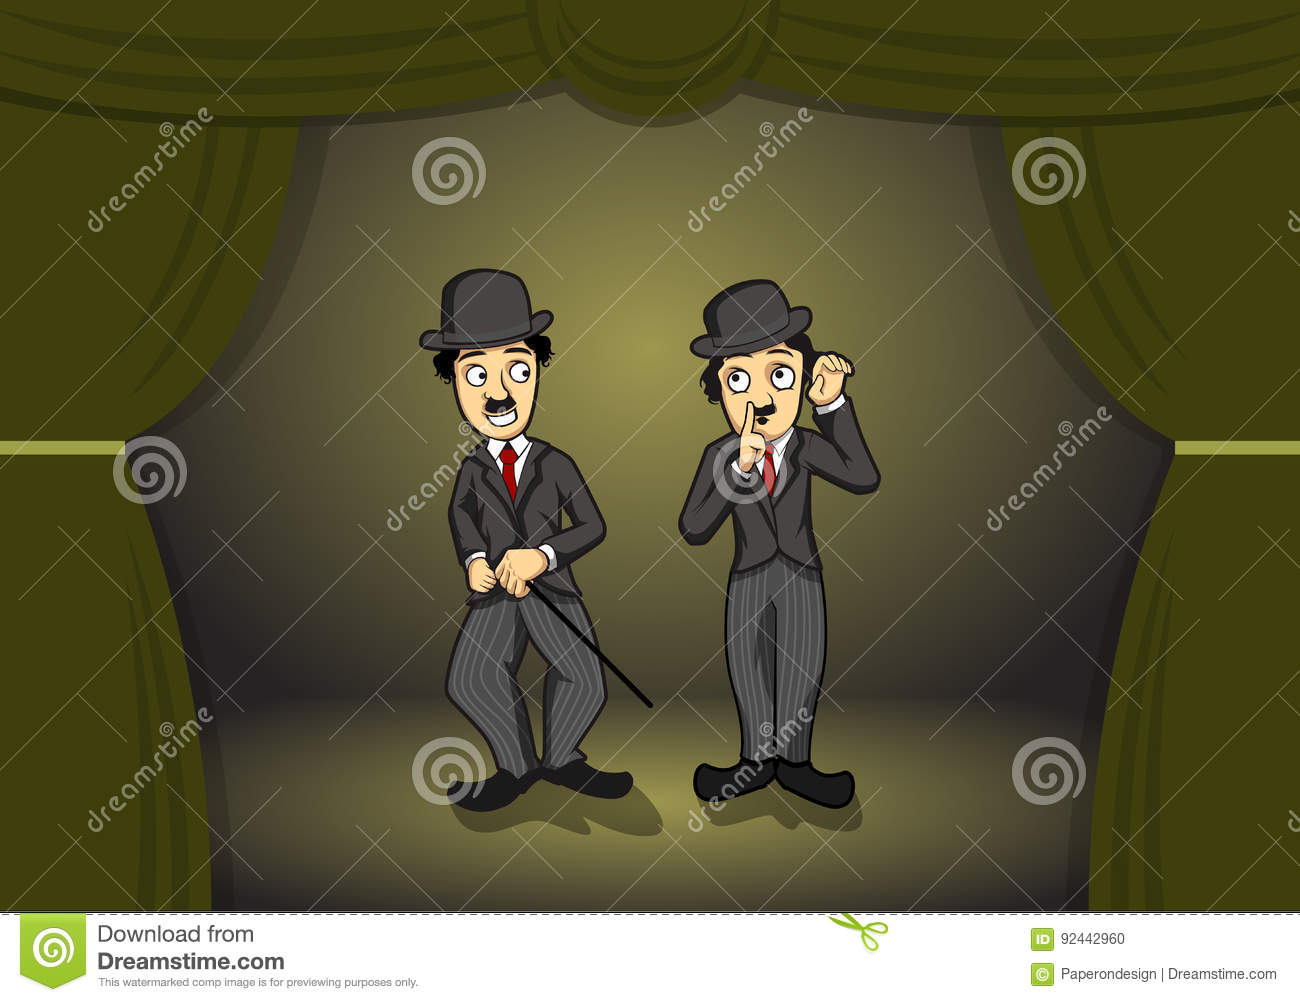 Impersonate Cartoons, Illustrations & Vector Stock Images ...